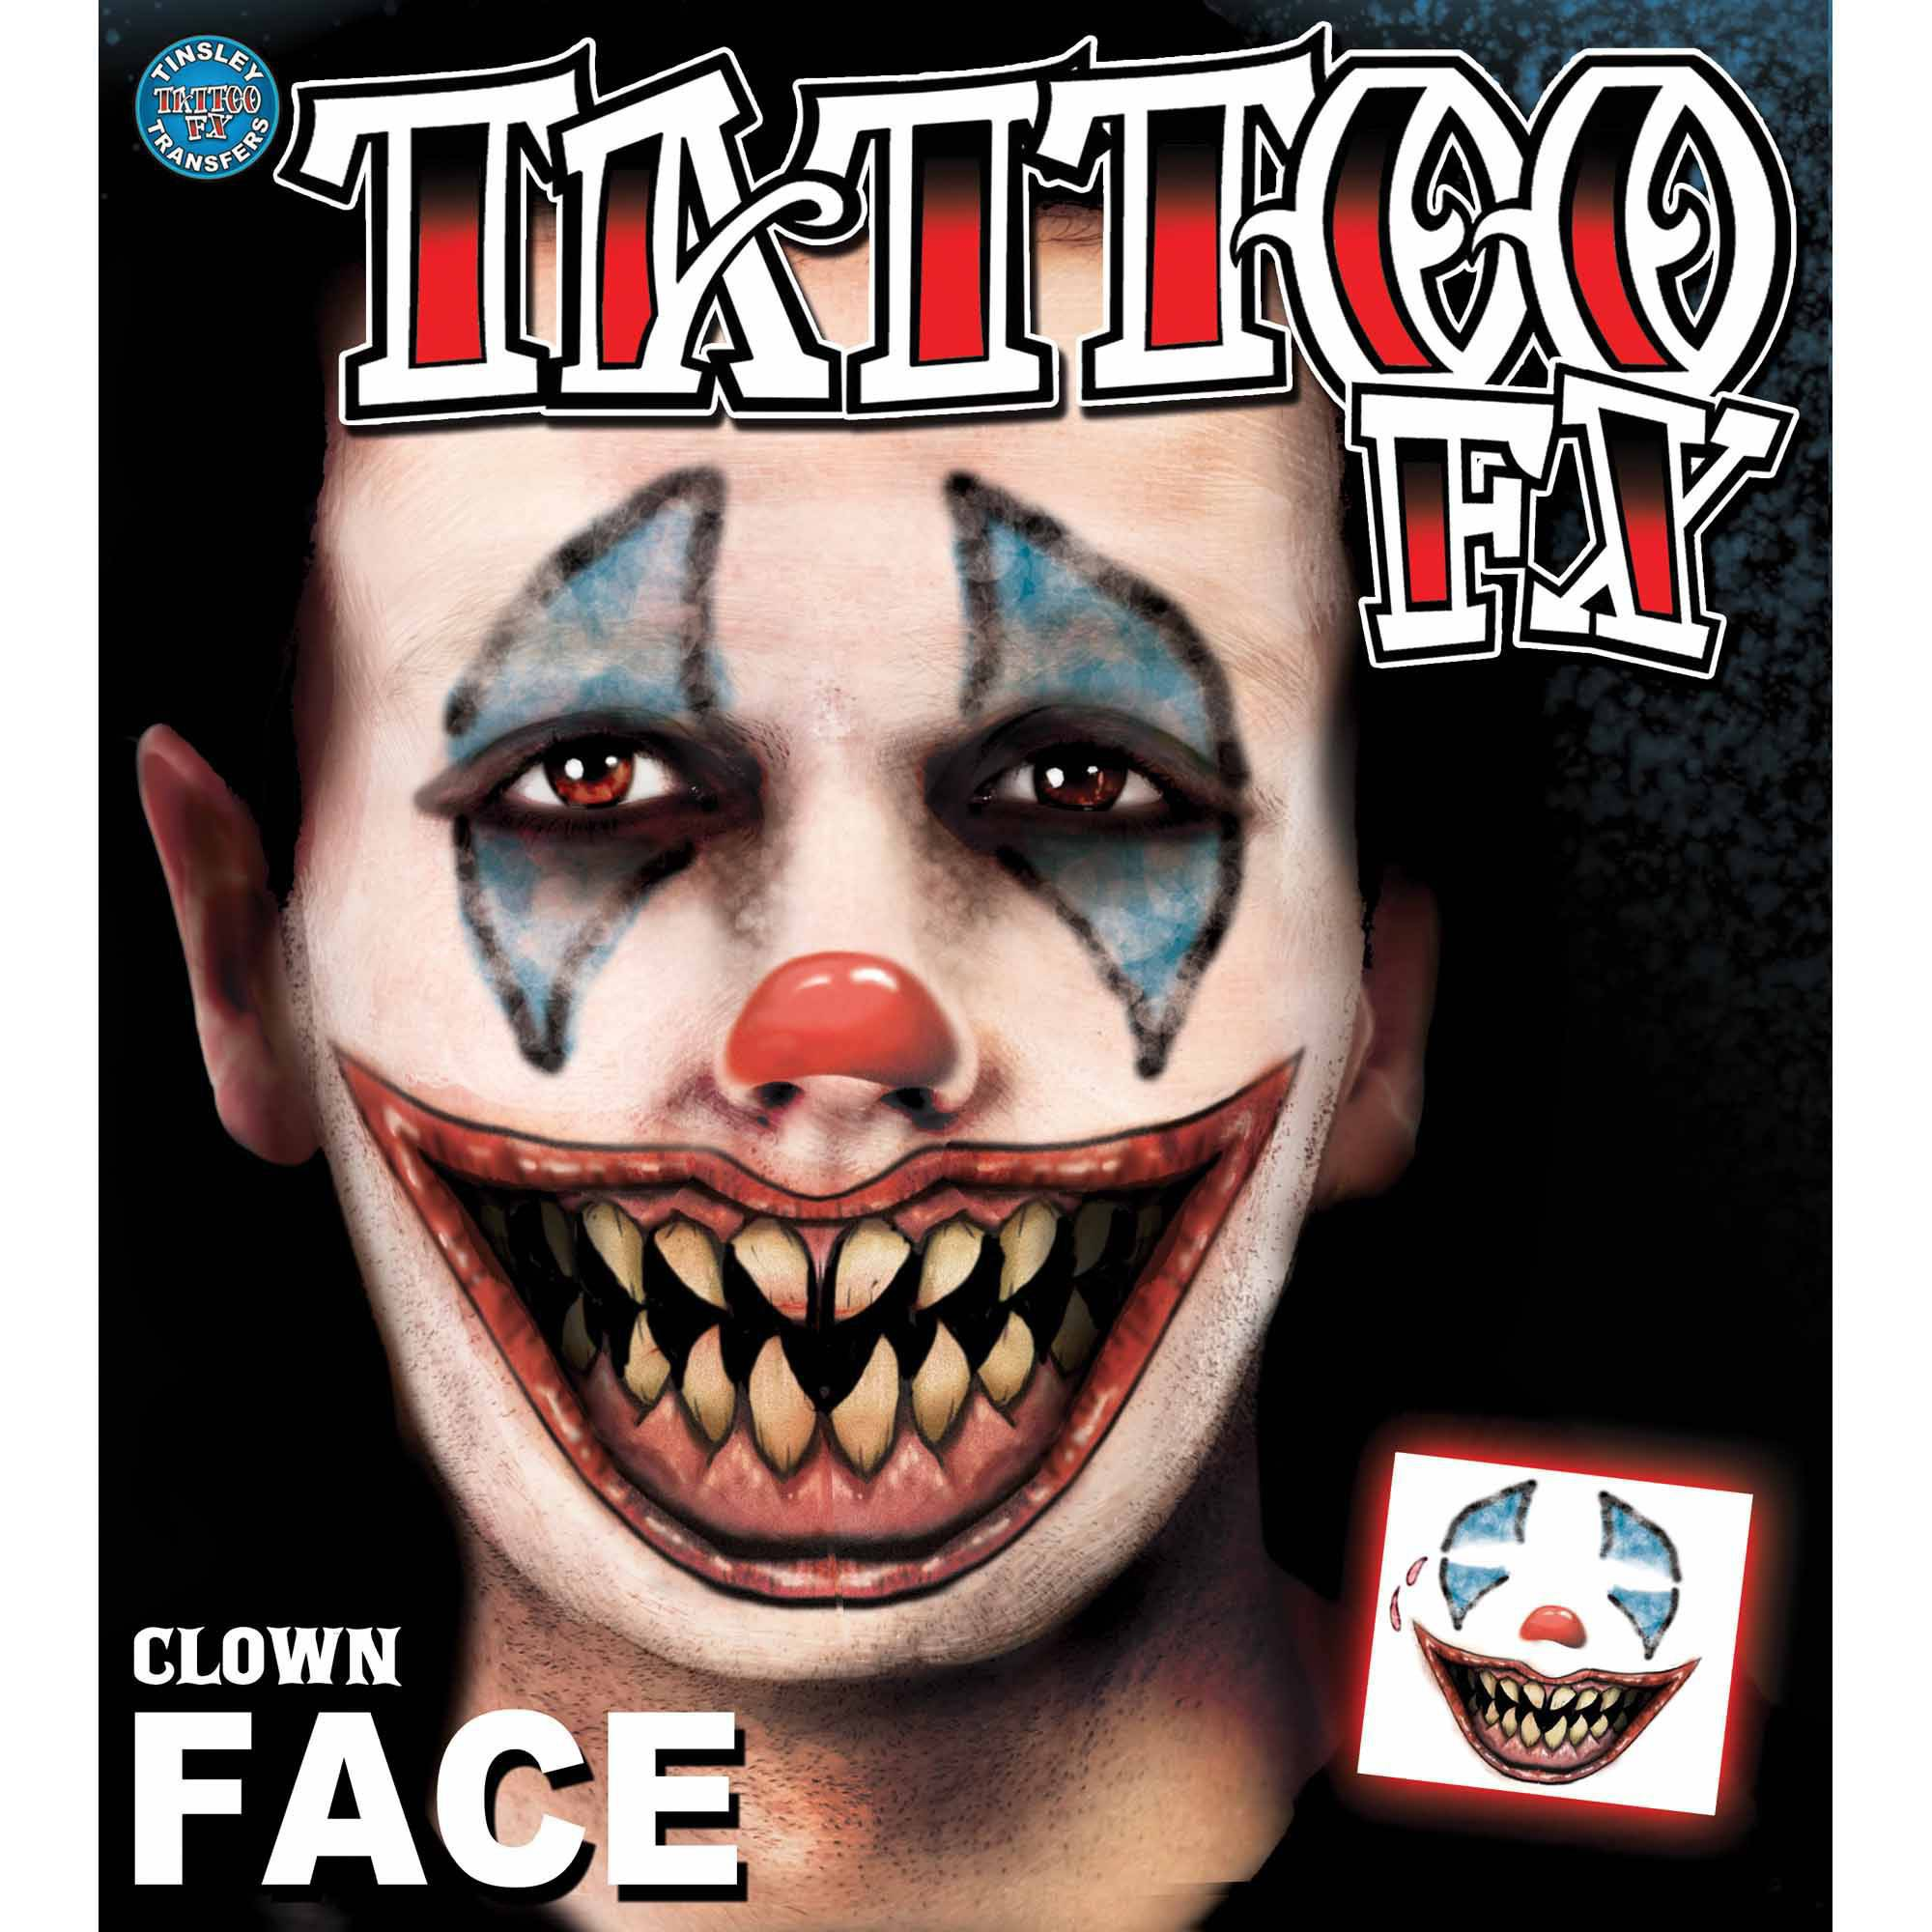 Clown Face Tattoo Adult Halloween Accessory